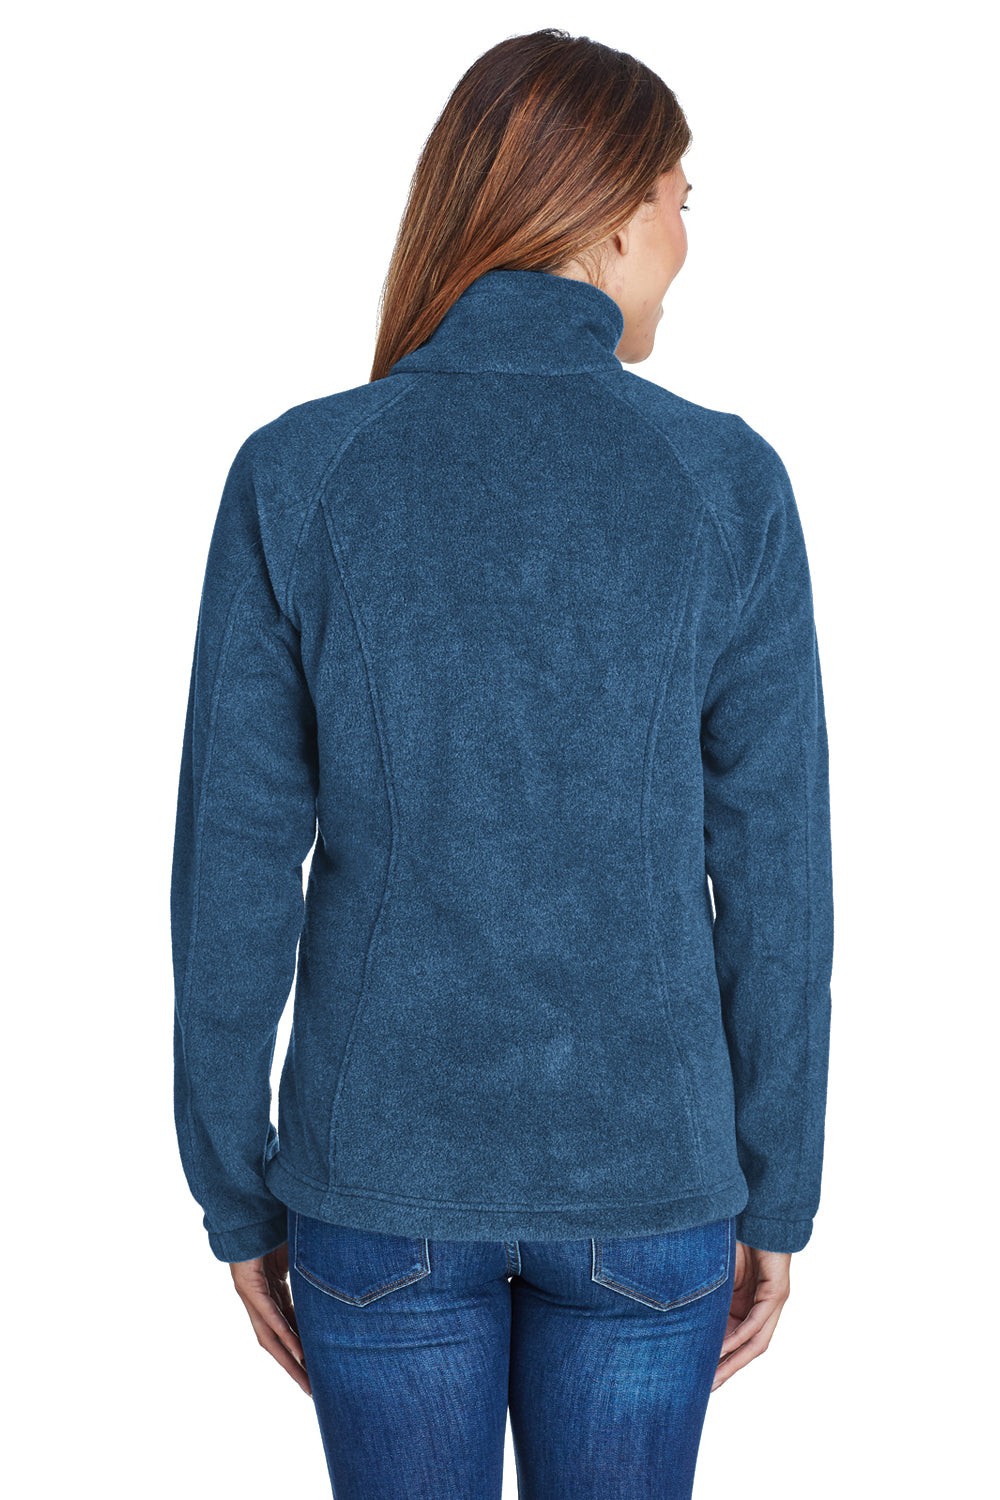 Columbia 6439 Womens Benton Springs Full Zip Fleece Jacket Navy Blue Back